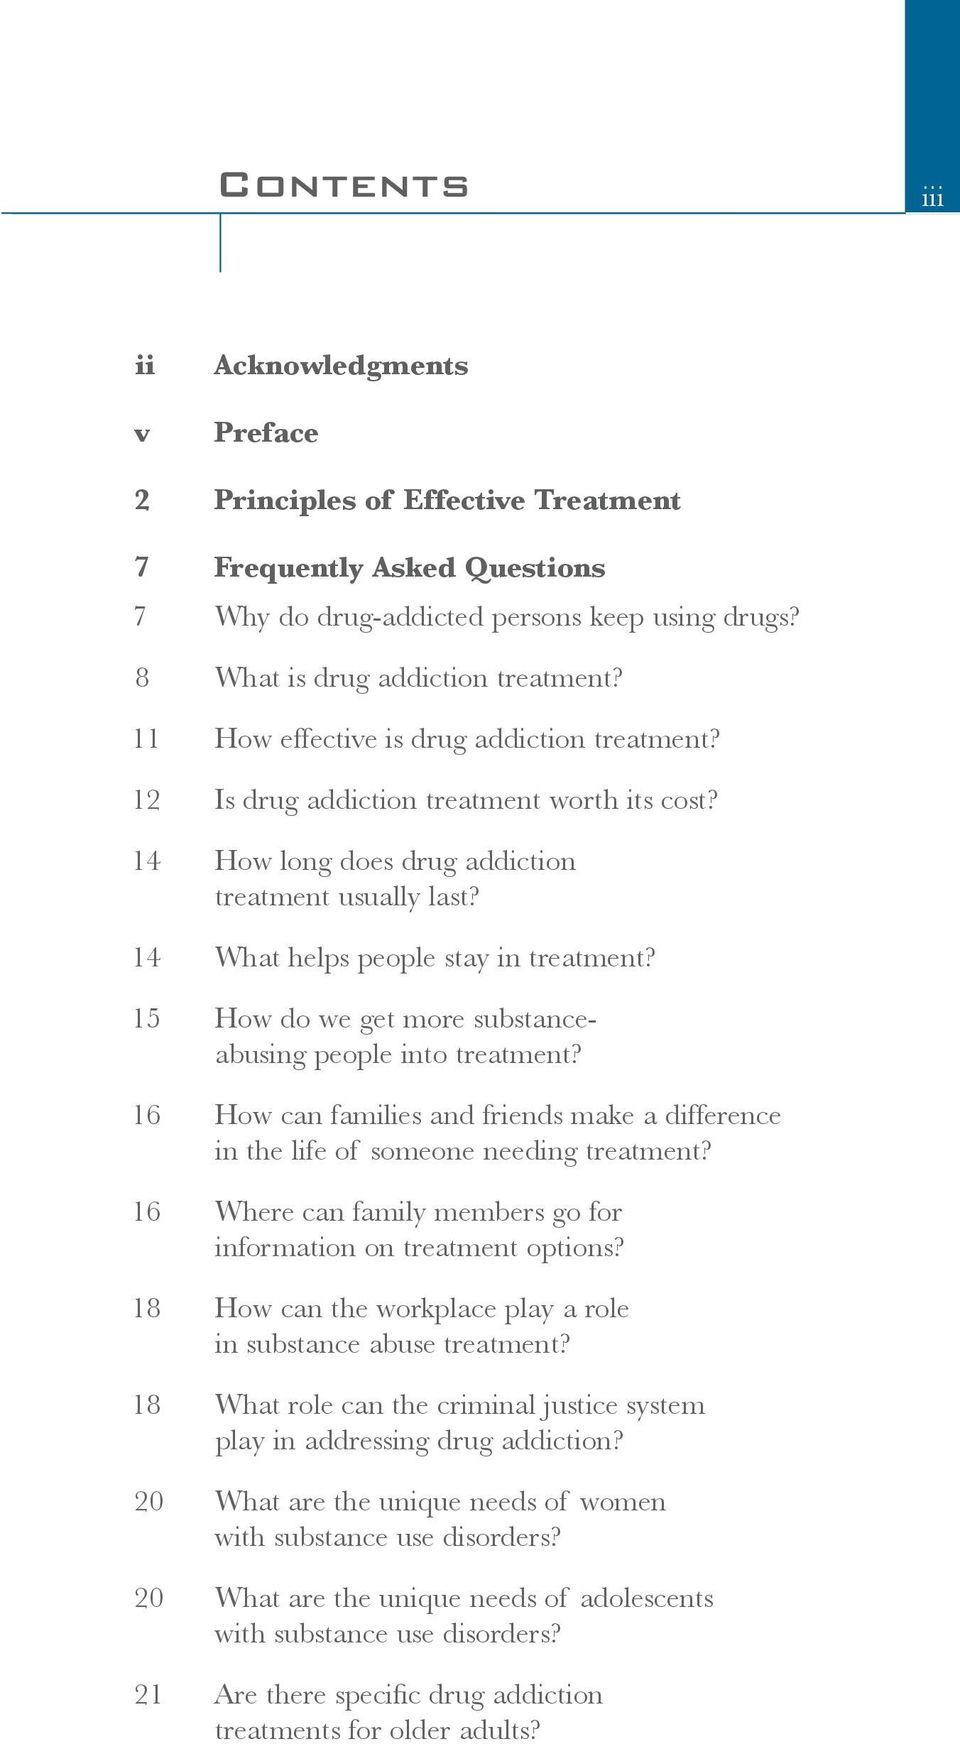 15 How do we get more substanceabusing people into treatment? 16 How can families and friends make a difference in the life of someone needing treatment?